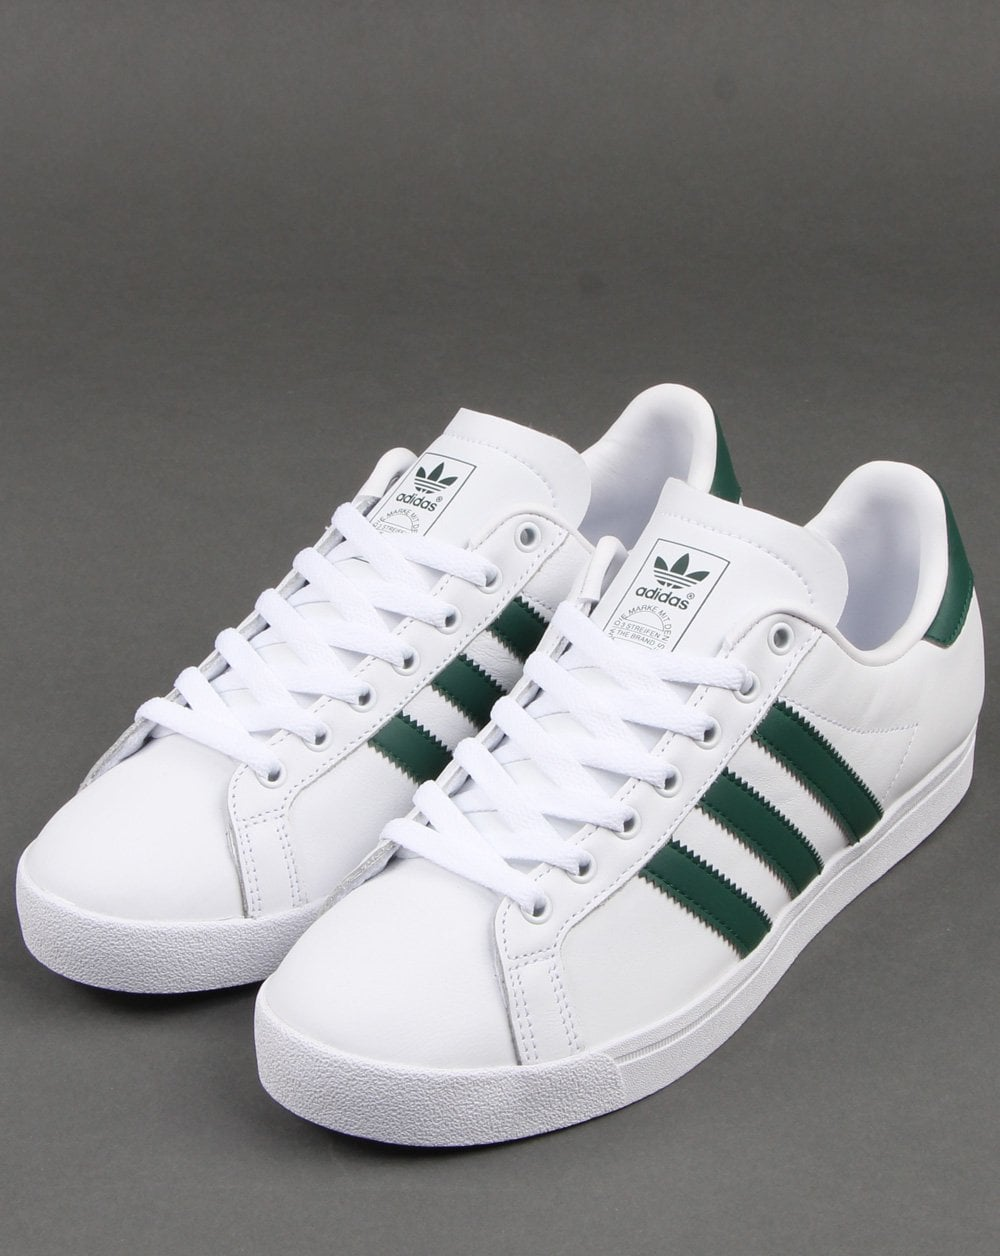 Duque incompleto fascismo  adidas Coast Star Trainers in White and Green | 80s Casual Classics